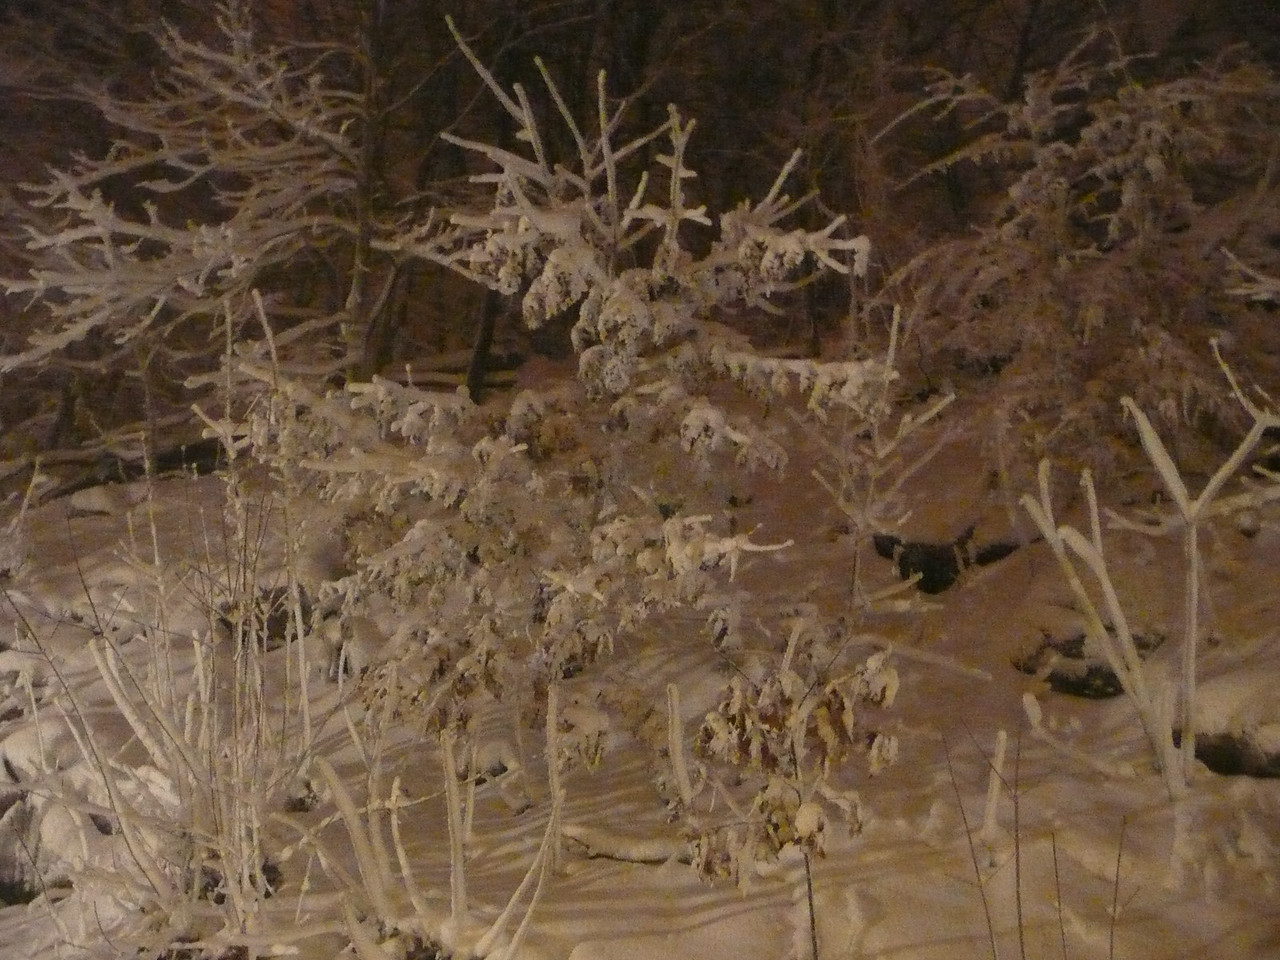 December 26, 2010. A late-Christmas storm brought 18 inches to Lynn, MA.